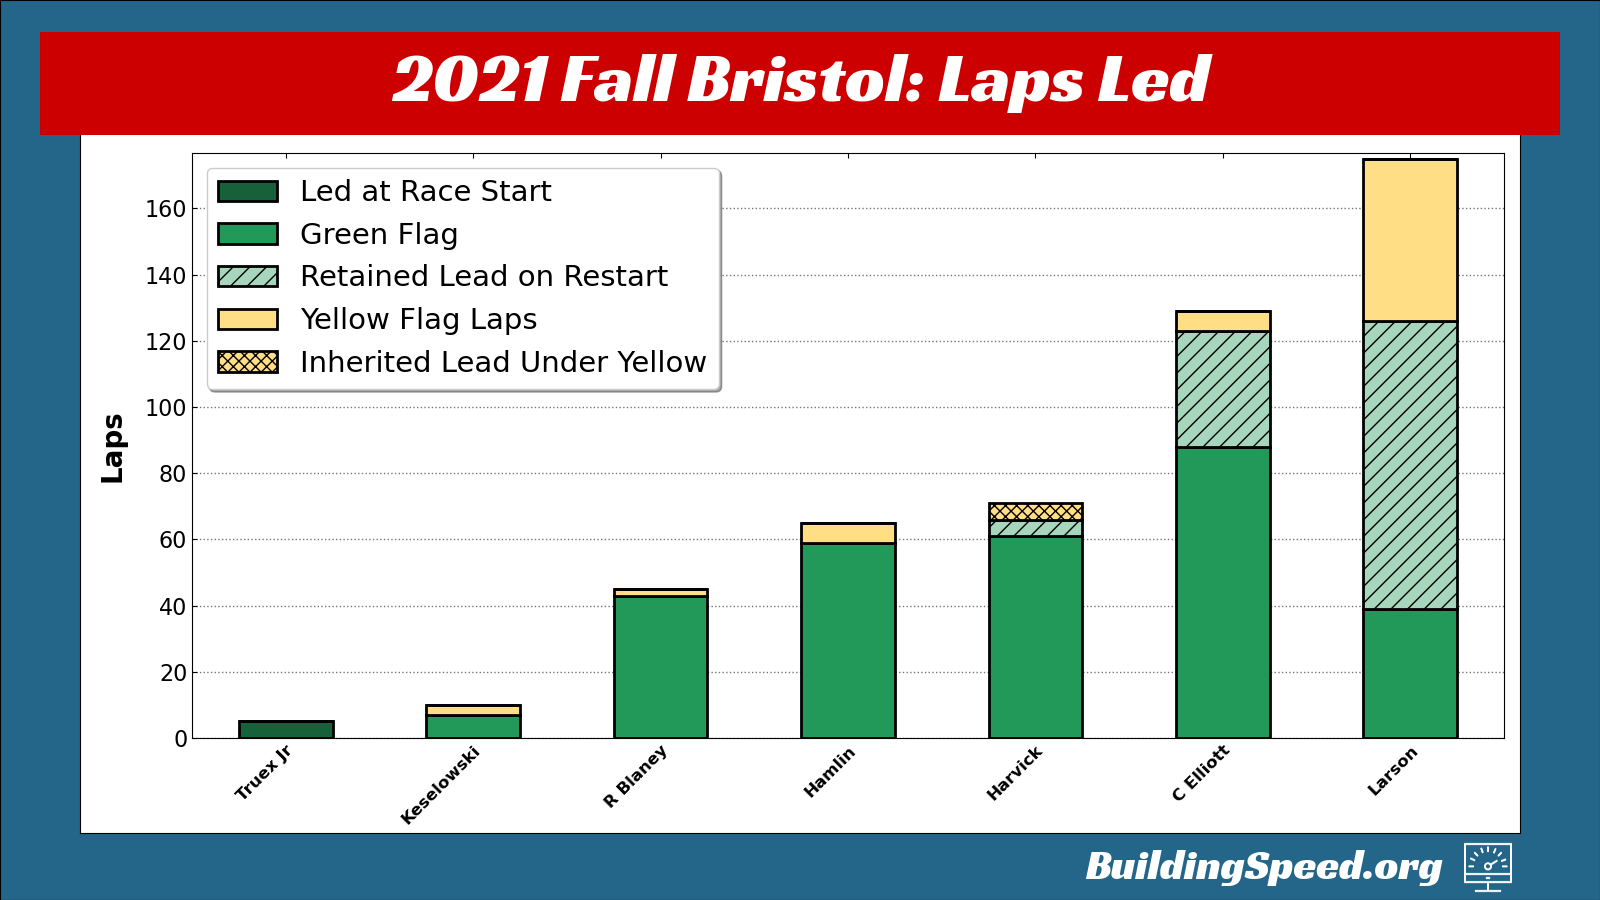 The 2021 Fall Bristol Race Recap vertical stacked bar graph of laps led